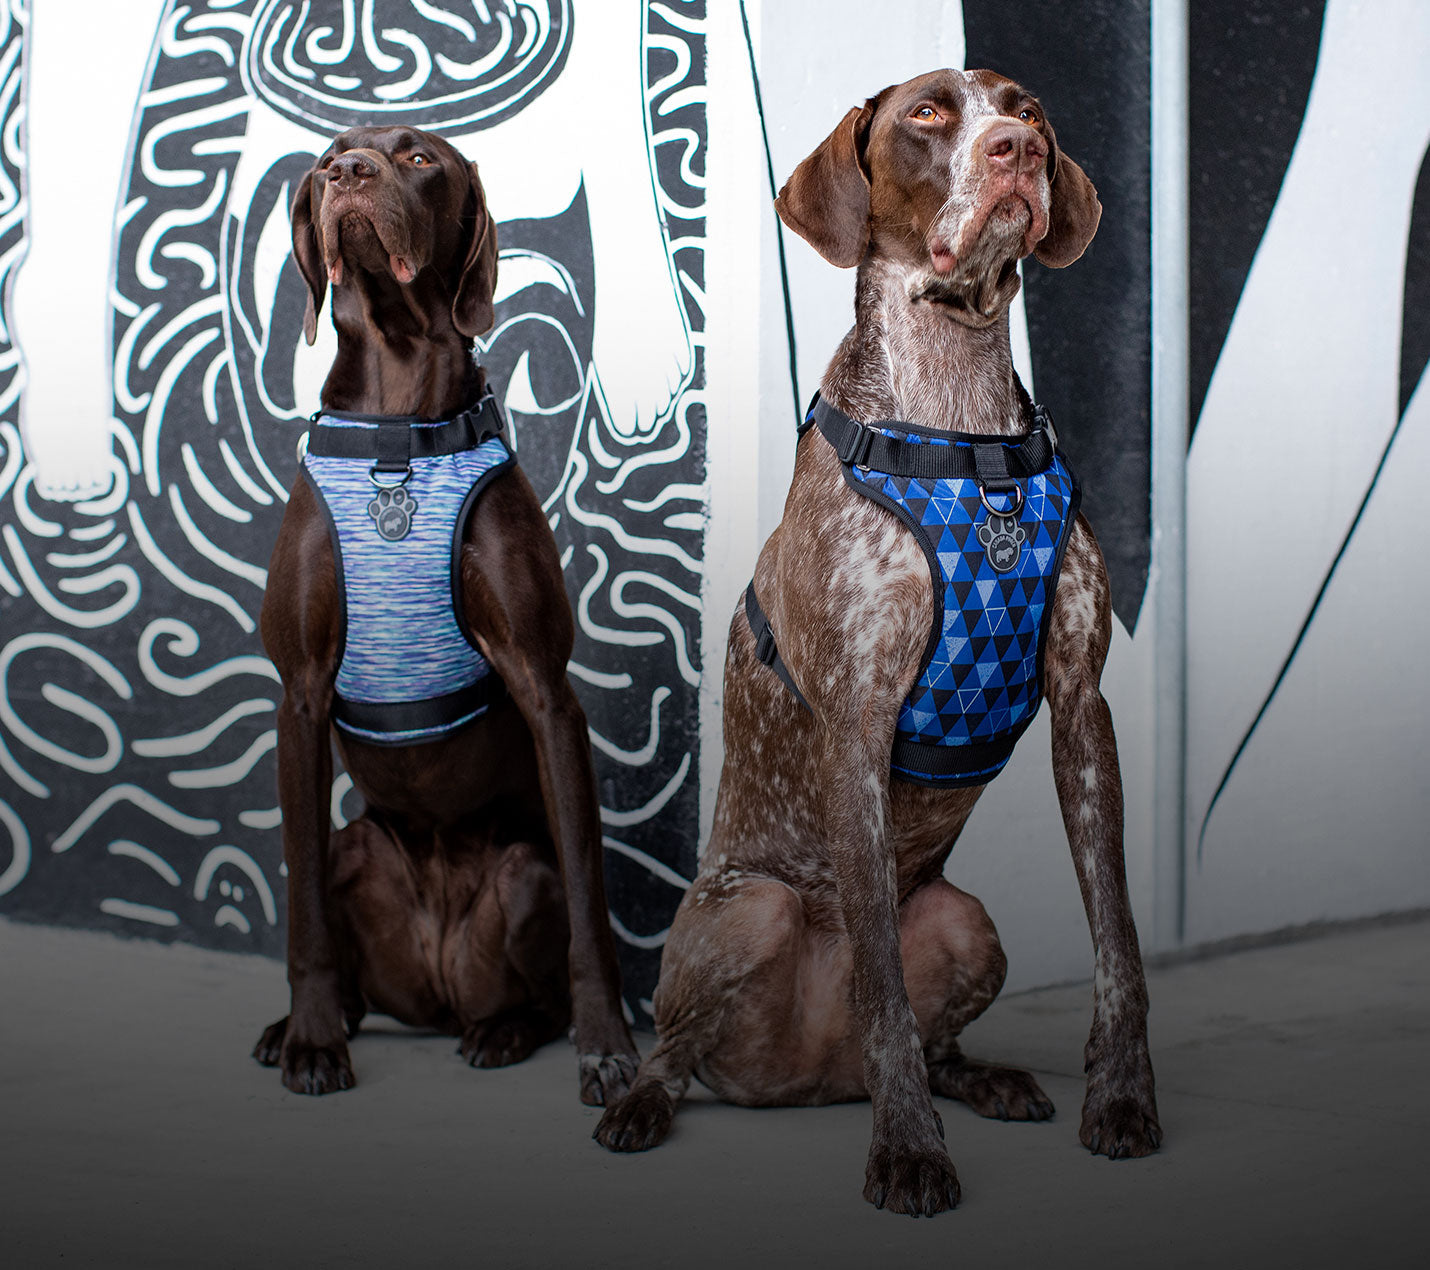 Two dogs wearing blue harnesses